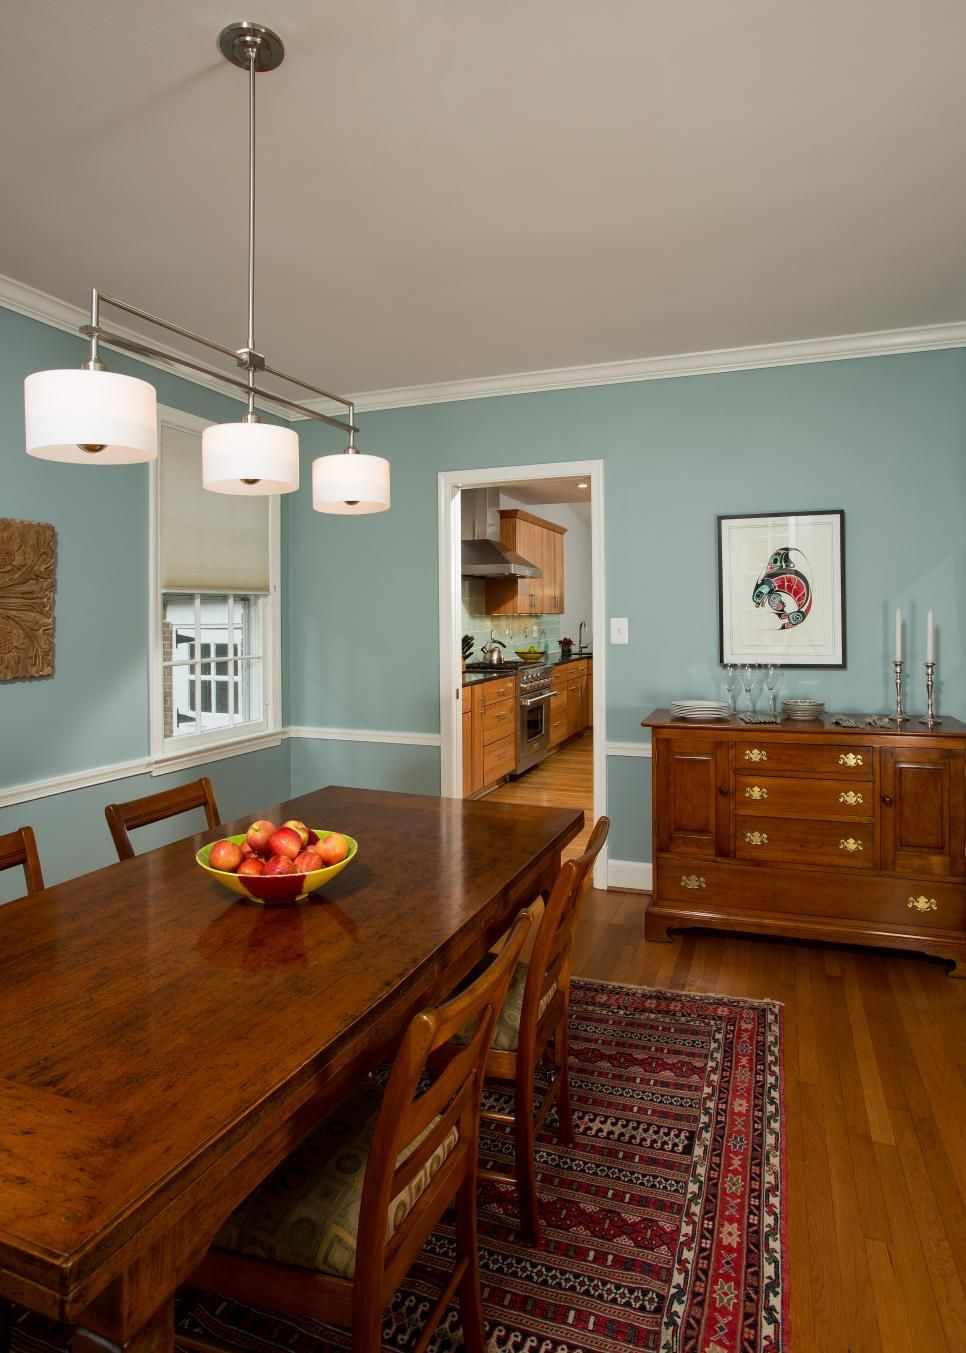 This Dining Room Uses Gray Blue Walls And A Delicate Light